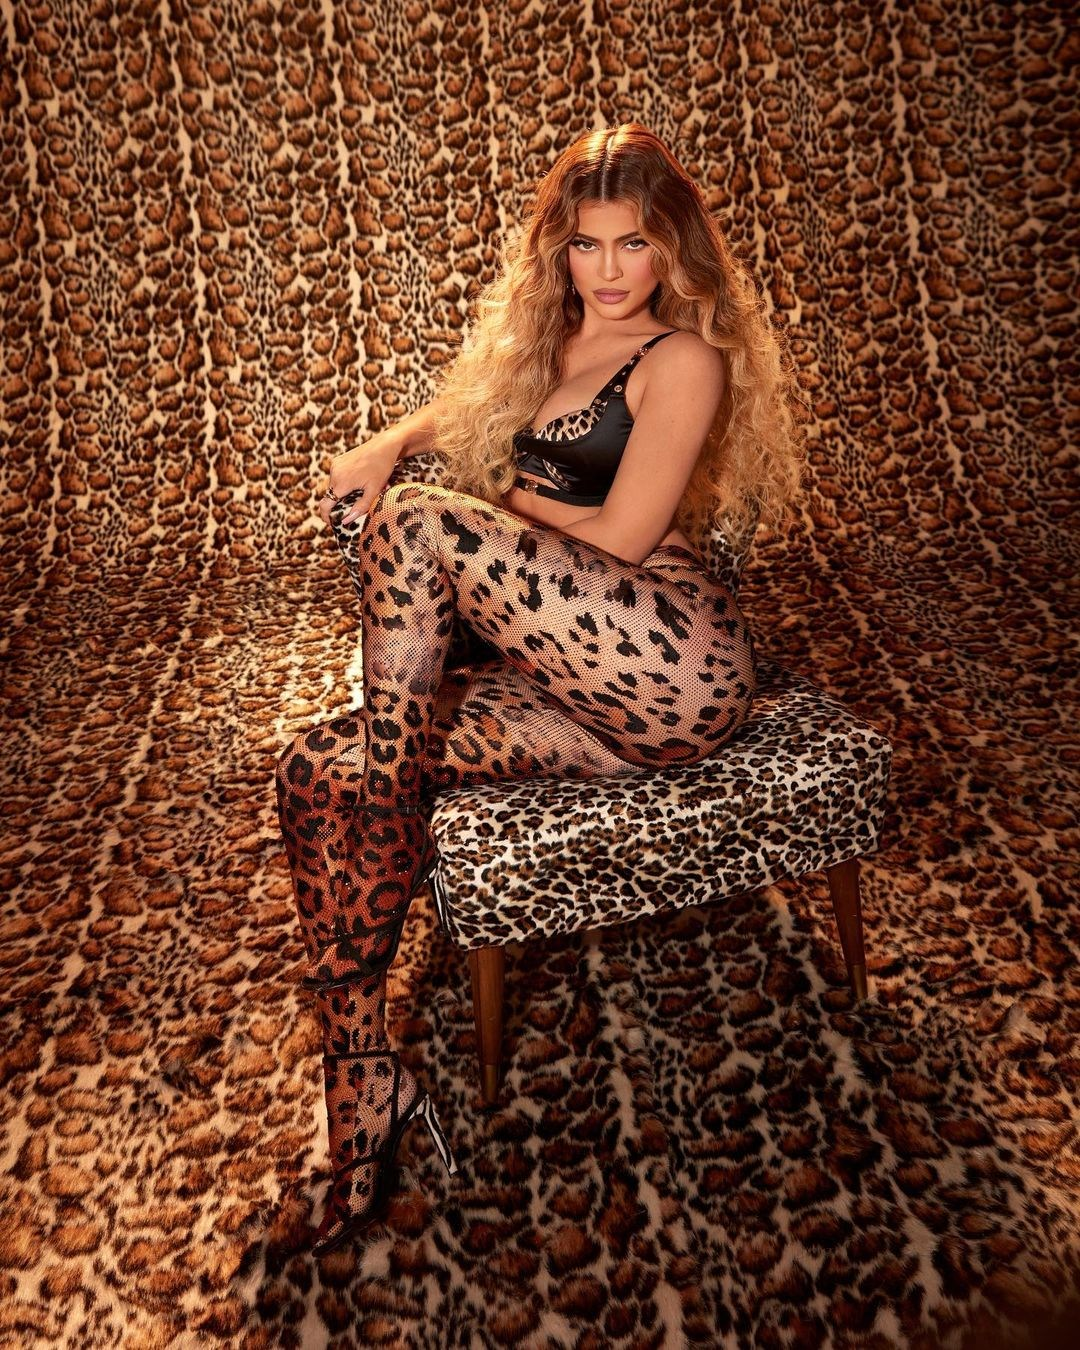 kylie-jenner-shares-her-new-leopard-collection-on-instagram